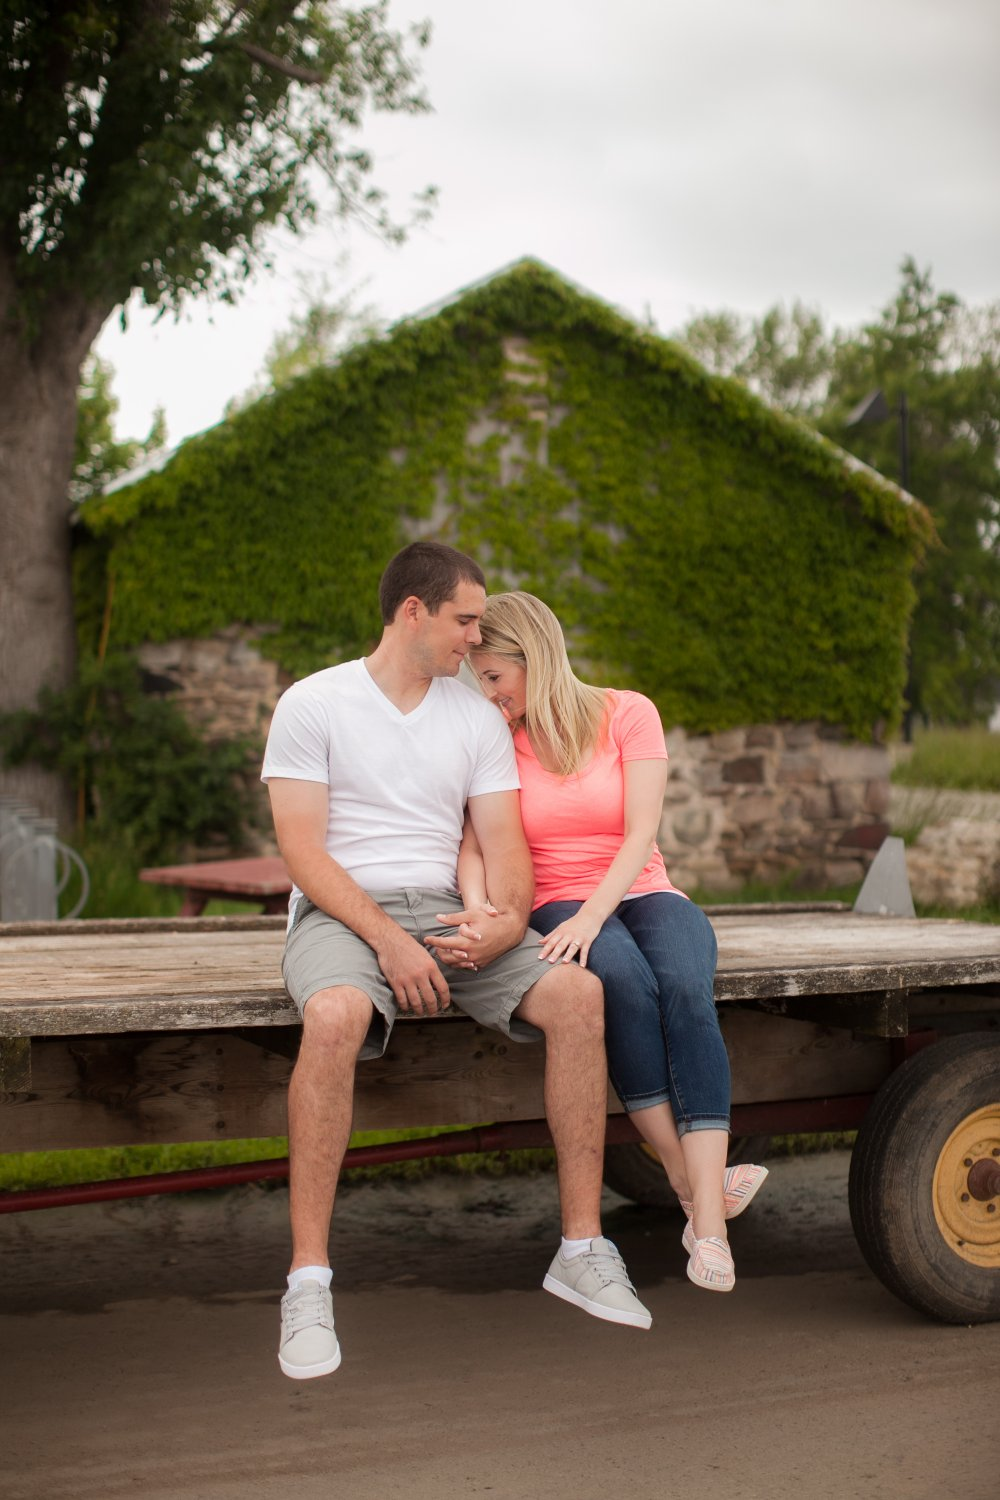 JF Hannigan Photography Engagement Session: Emily and Josh: a walk in the parks 4